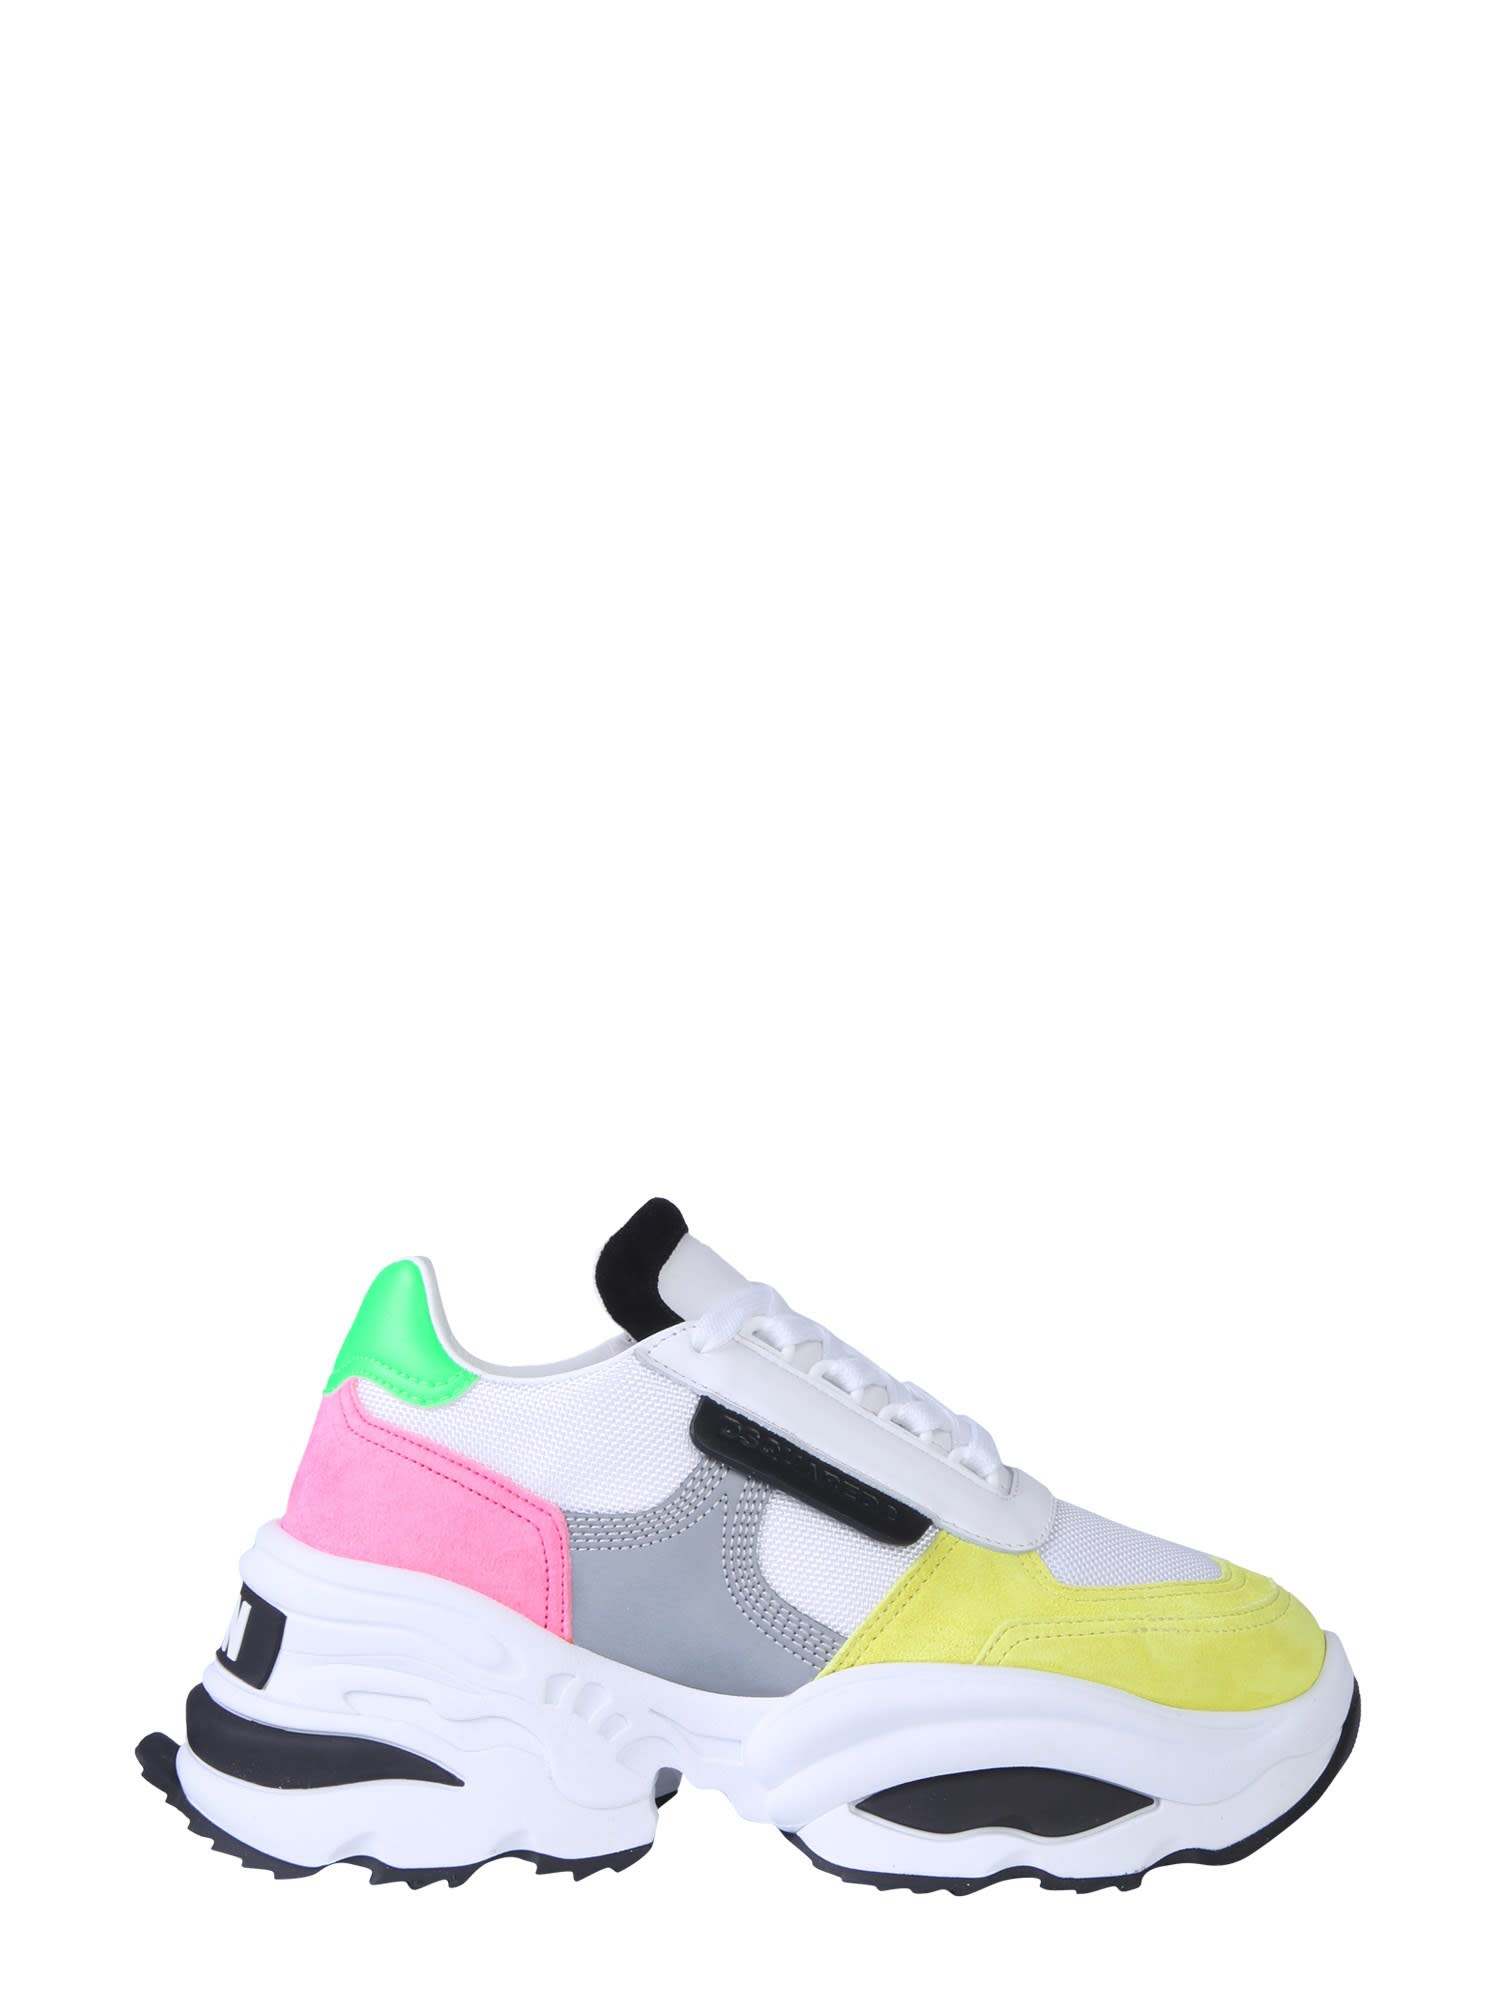 Dsquared2 Bionic Sport The Giant Hike Sneakers Damen Schuhe